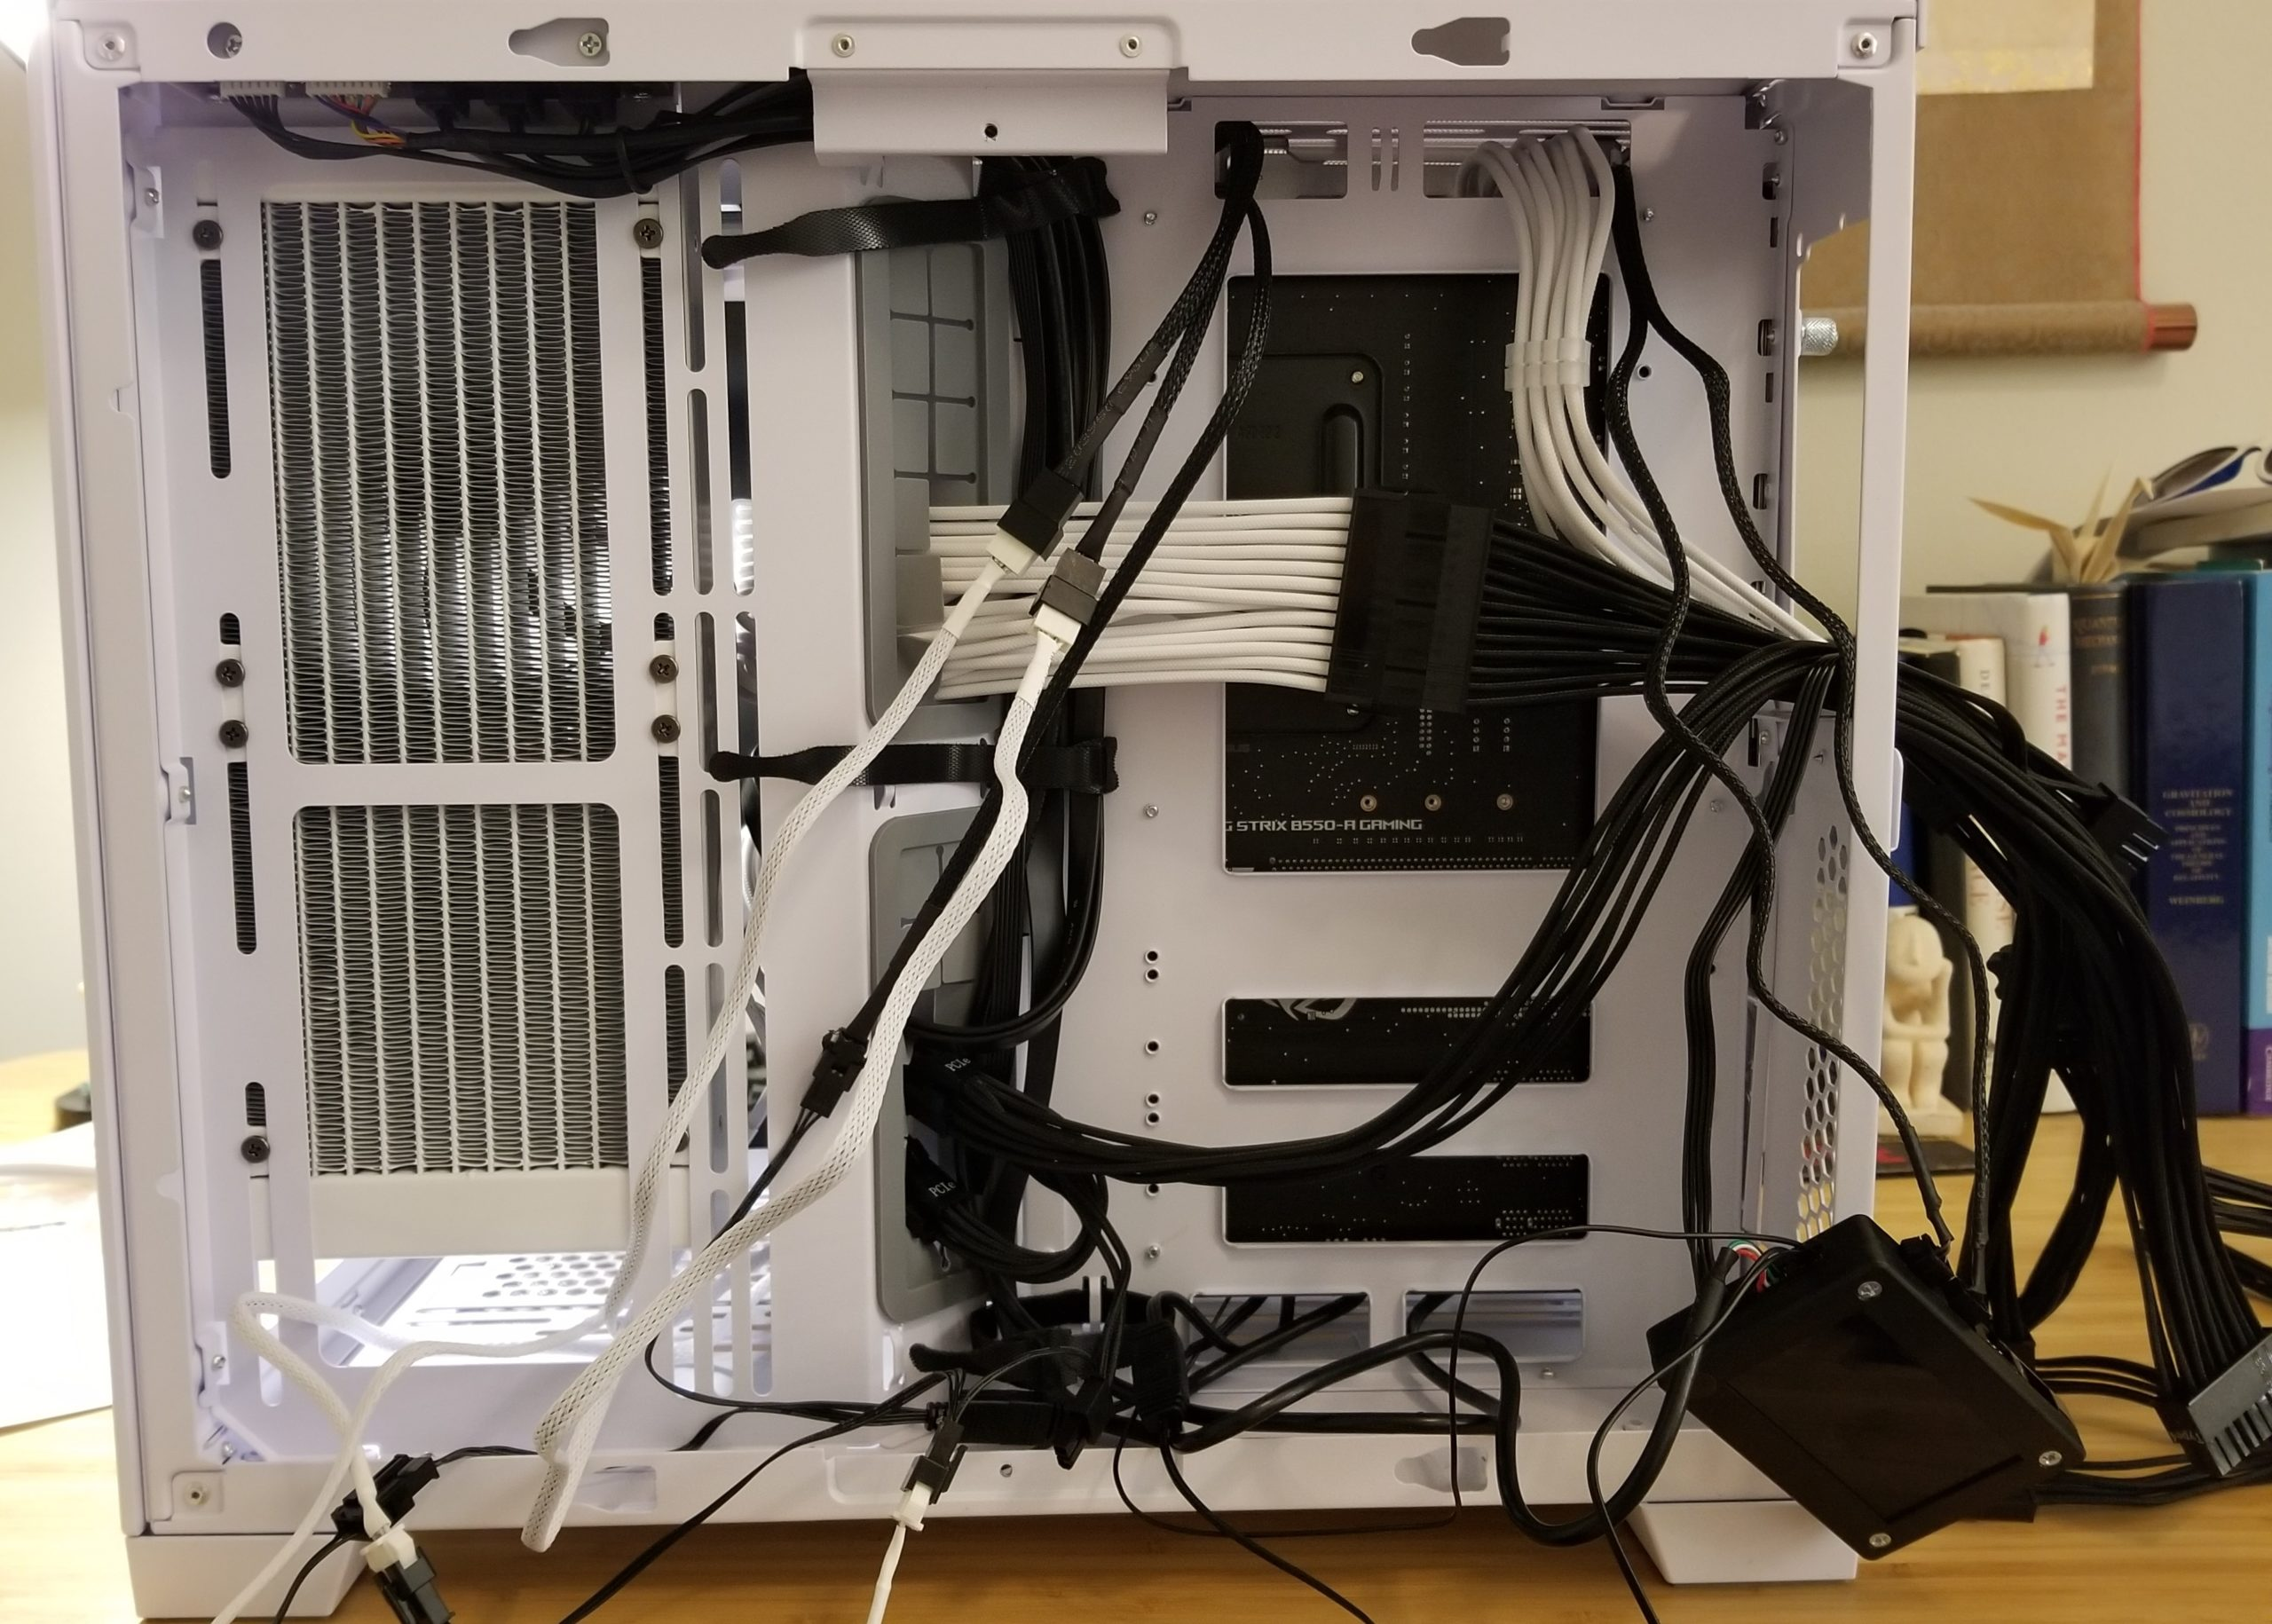 AMD Linux Build: cable before